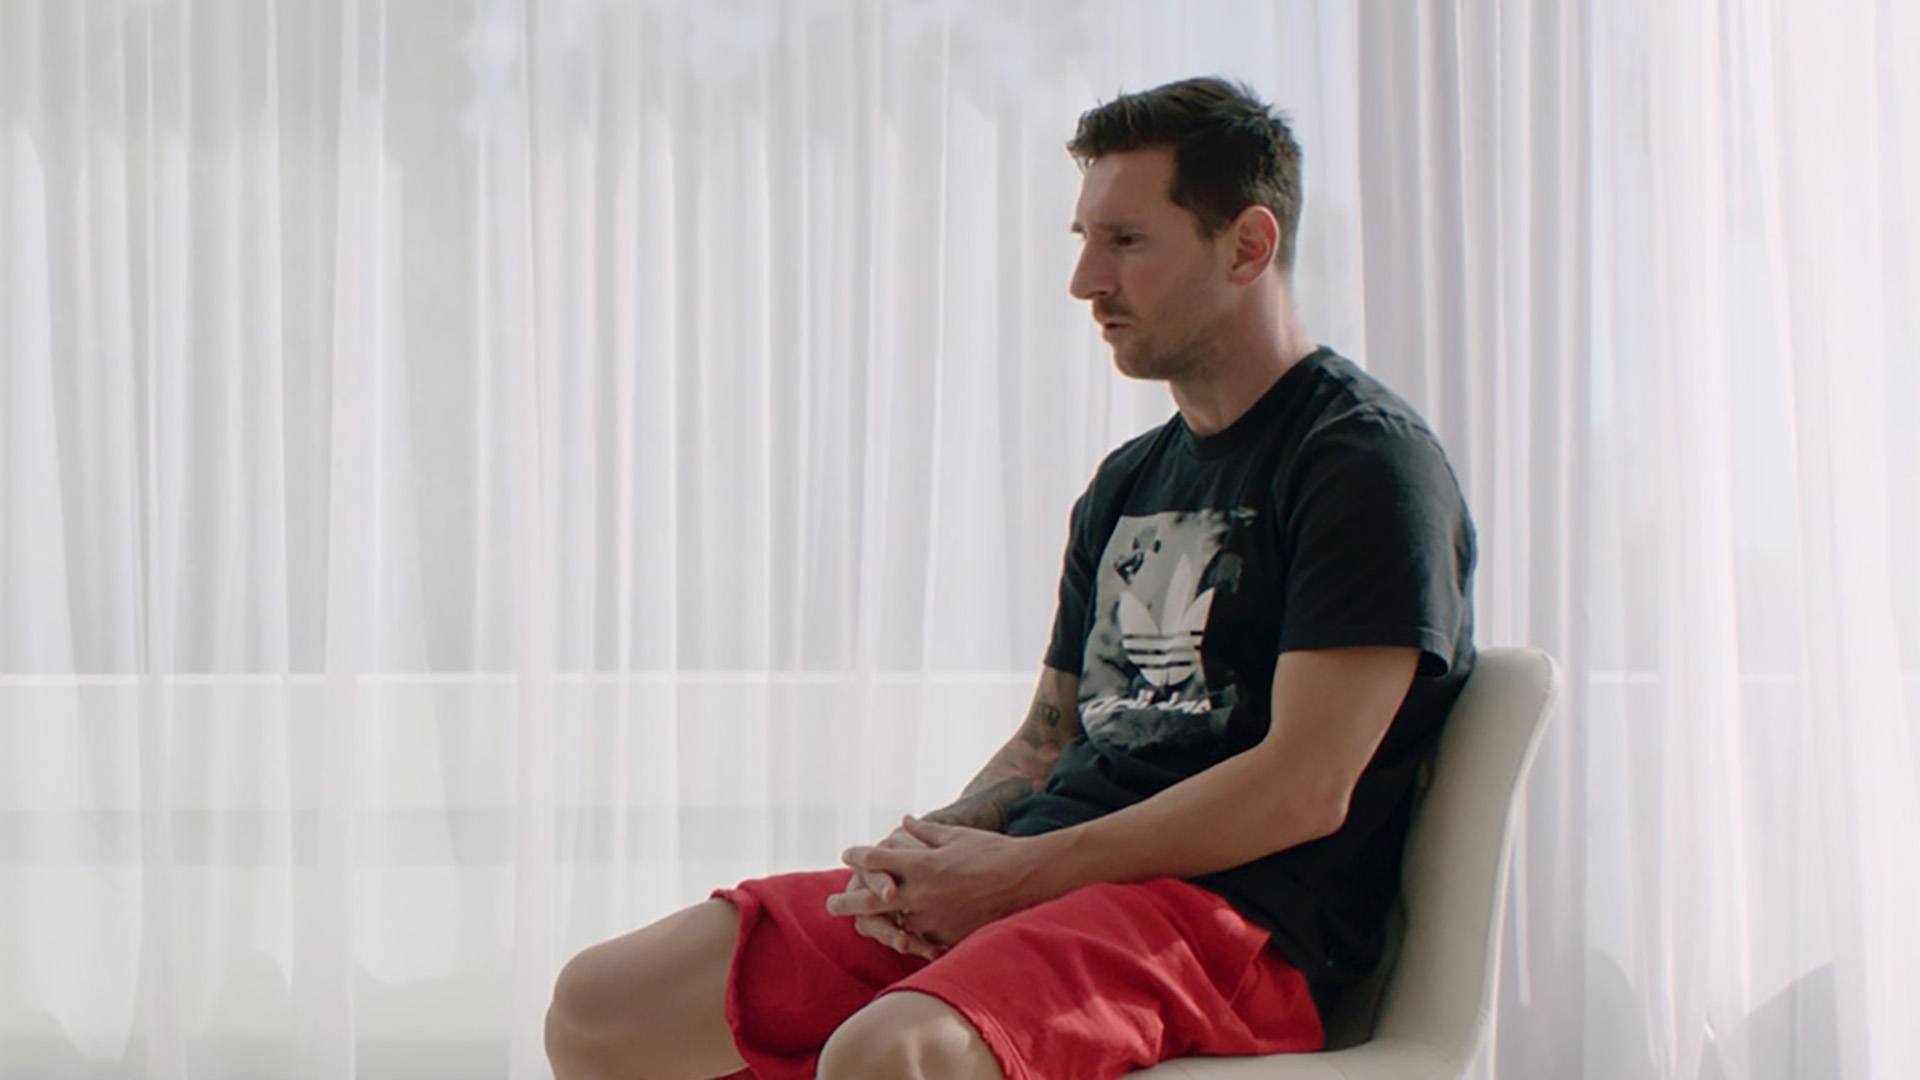 Messi had no choice but to stay at Barca due to 'bad advice' - Hugo Sanchez